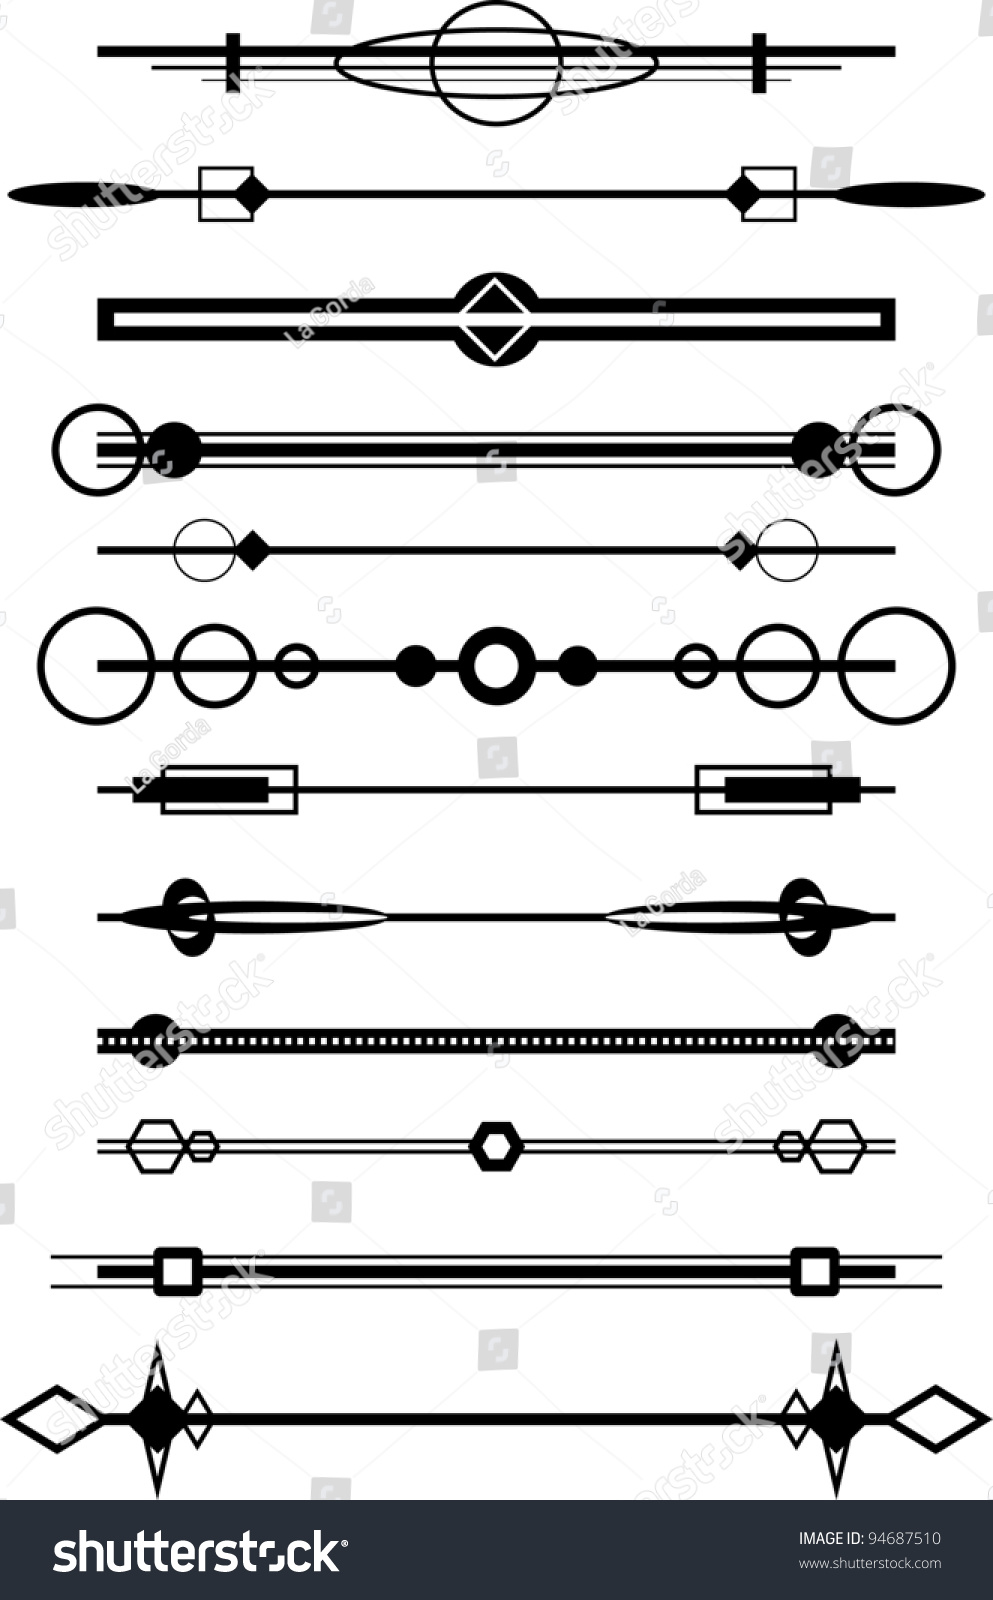 Drawing Lines Between Html Elements : Vintage drawing lines and elements stock vector